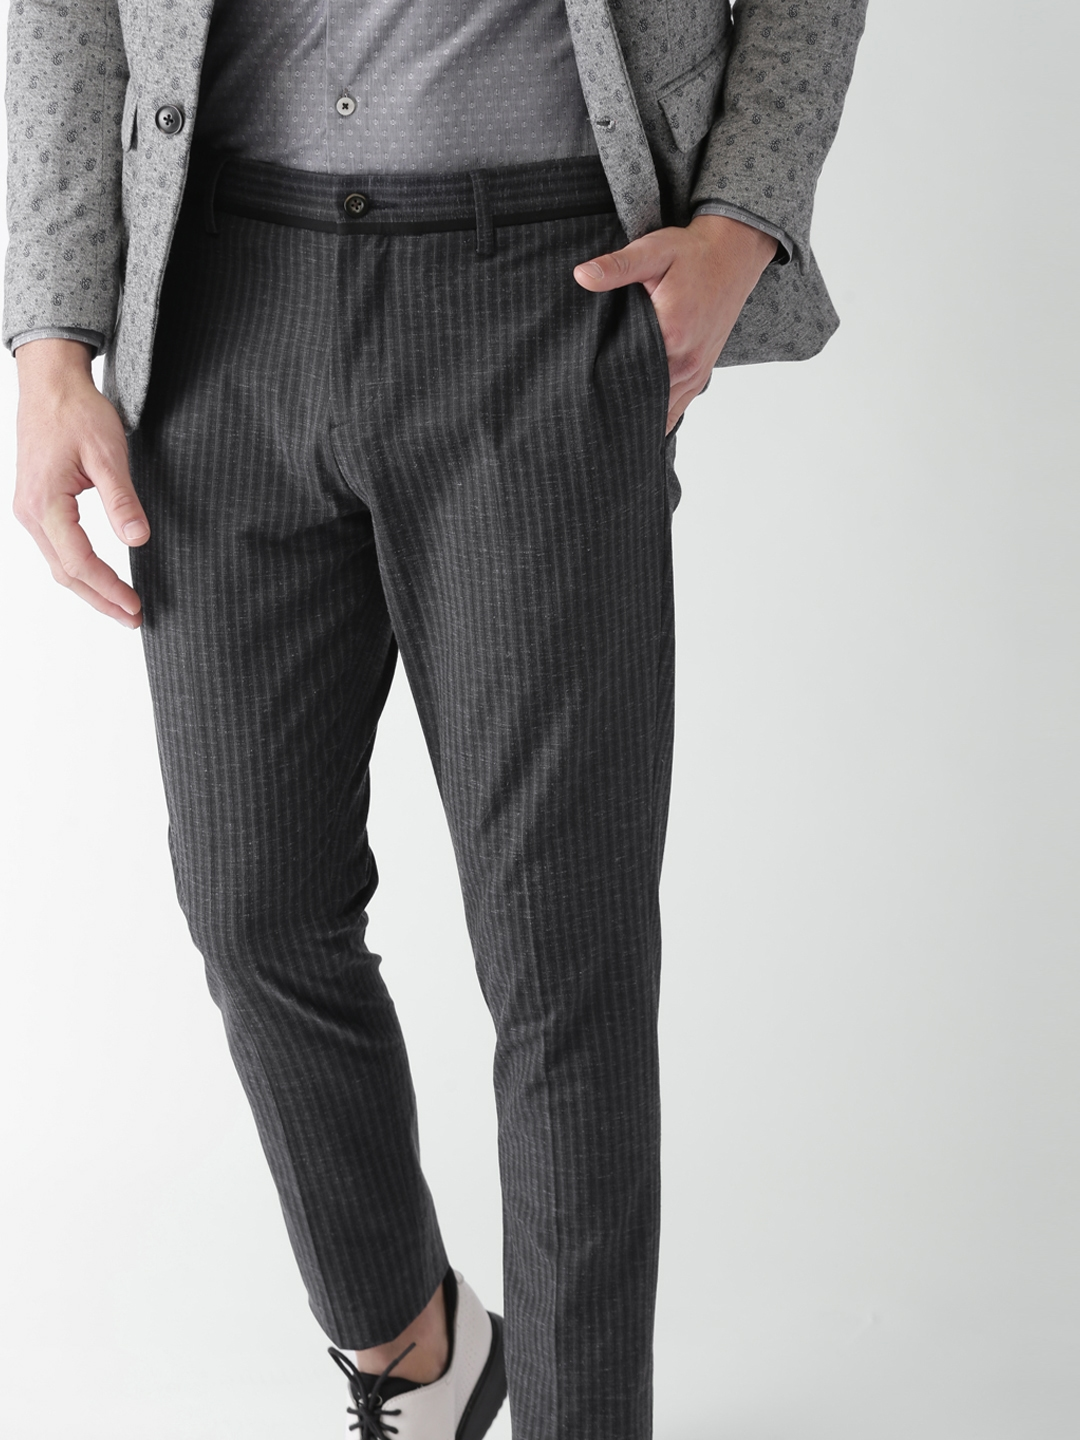 9b2af79421 INVICTUS Men Charcoal Grey Slim Fit Striped Smart Casual Trousers